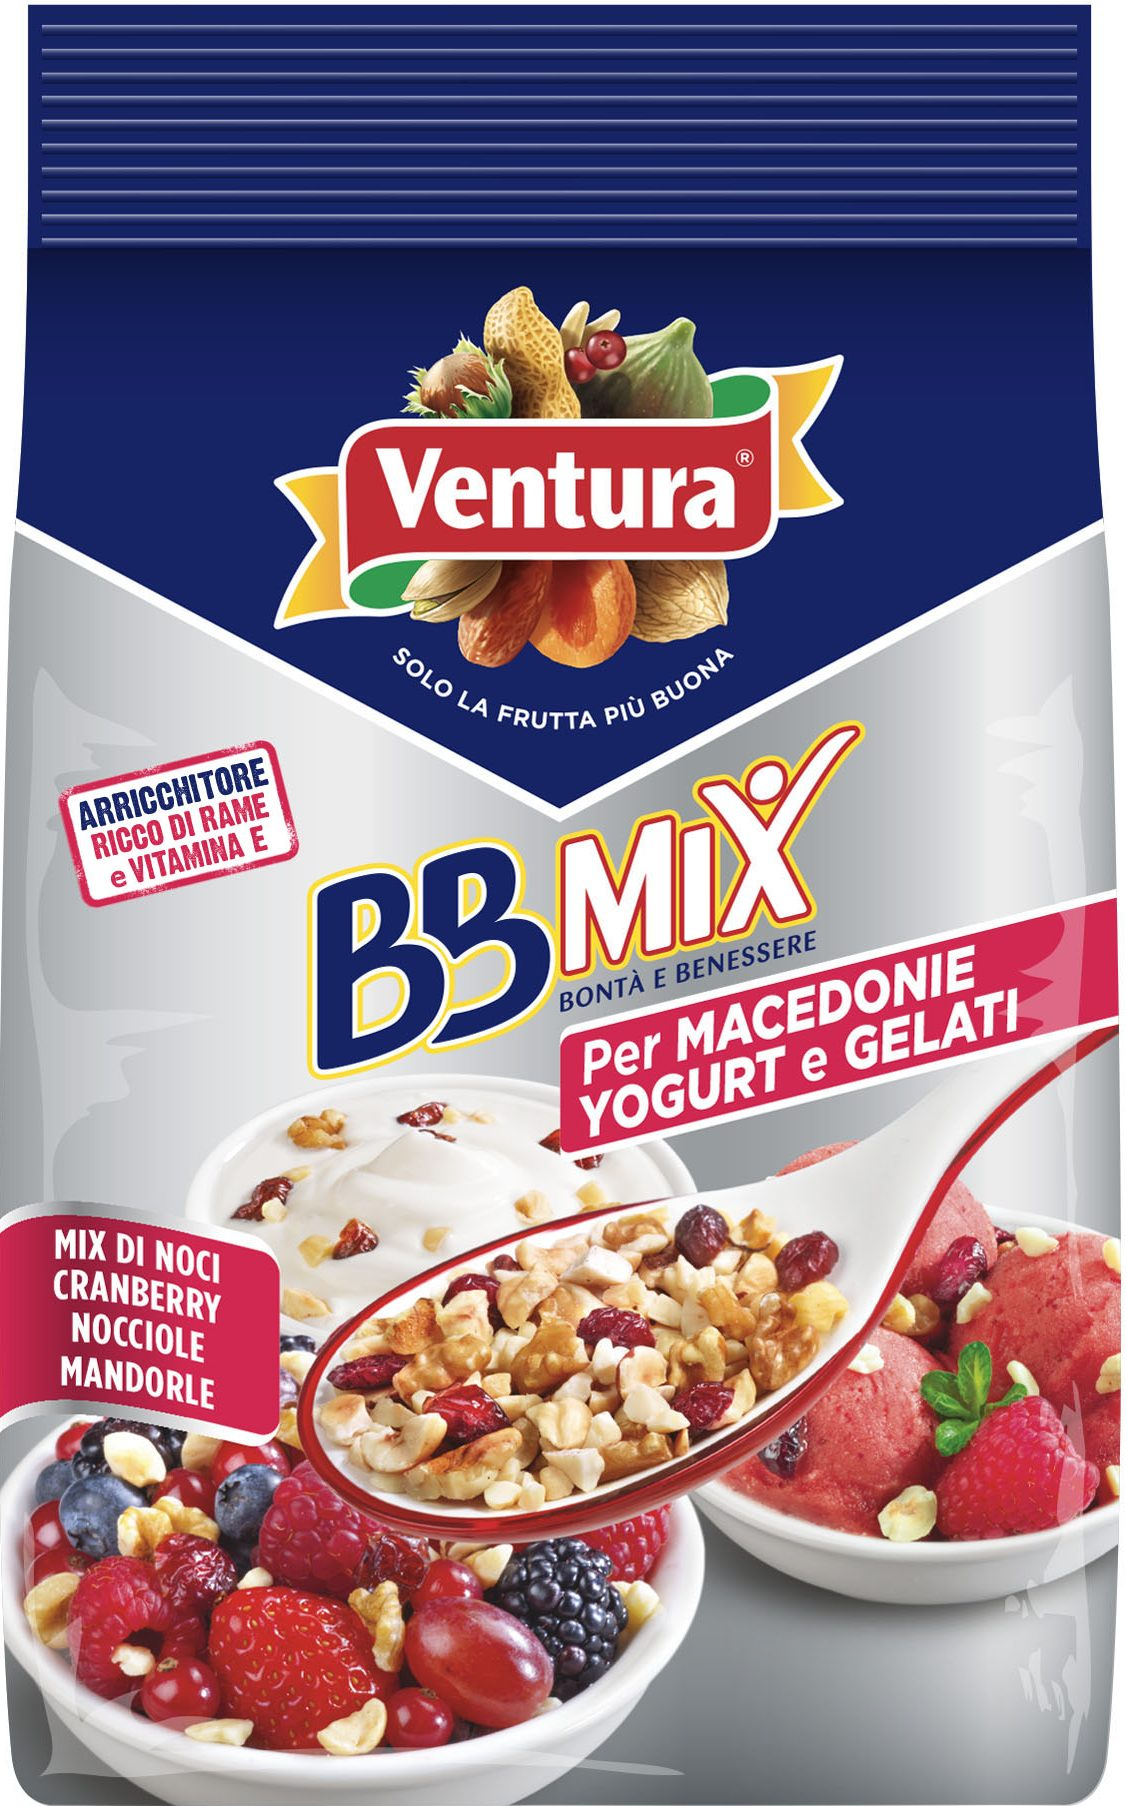 BBMix per macedonie, yogurt e gelati